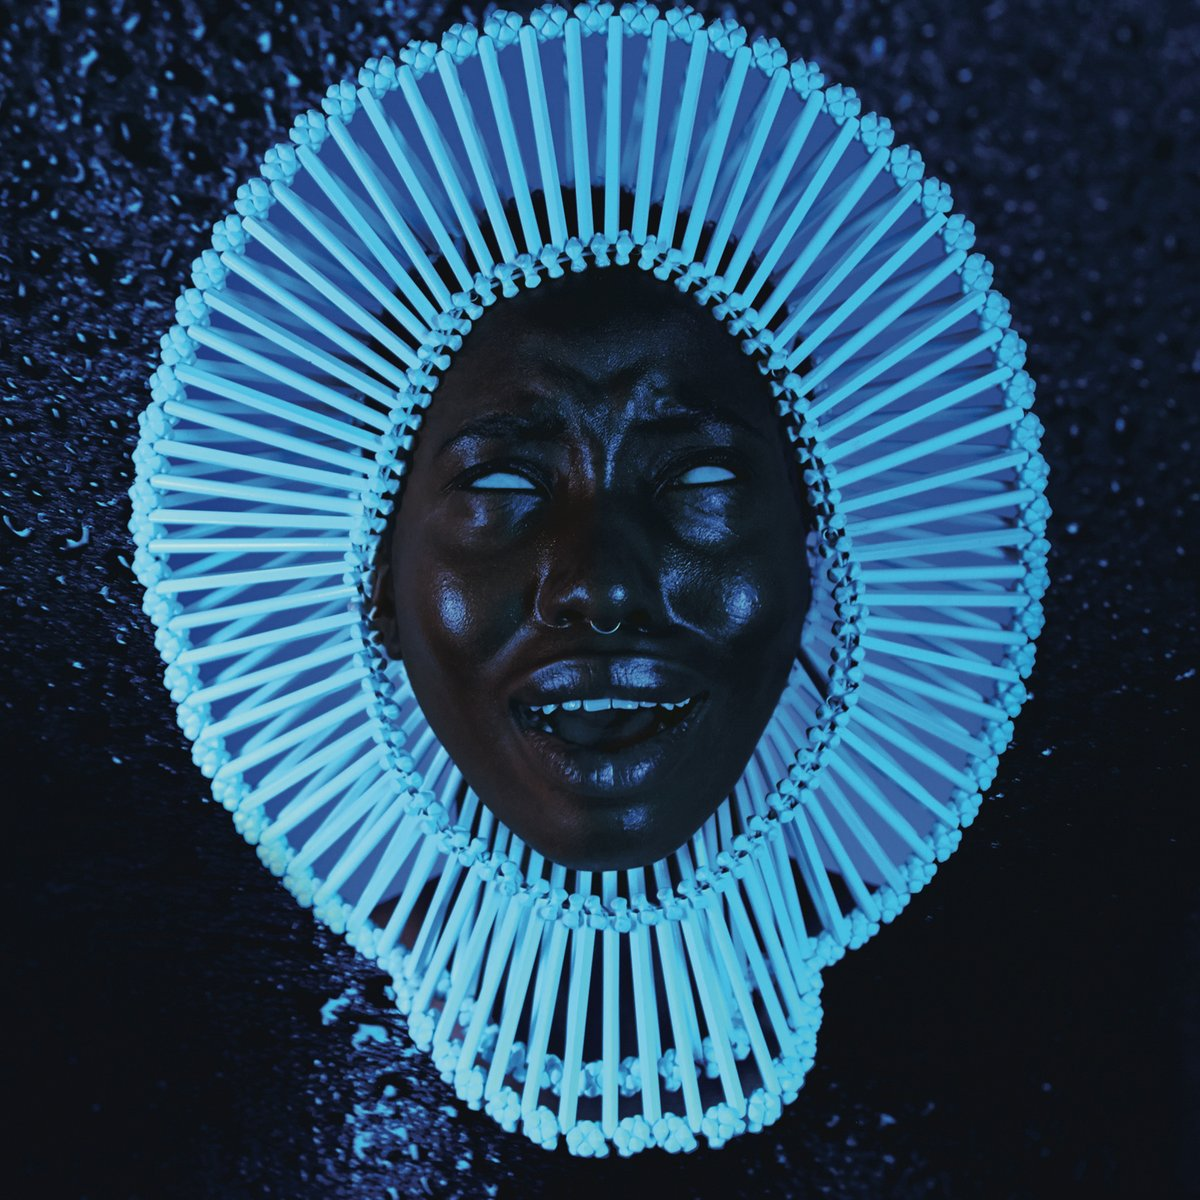 Childish has had a year from writing and acting in a show that took risks, to taking those risks even further with his music and going into the R & B, soul and funk genre. While Childish can rap, it's a feat that he is able to pull off an entertaining album that only has a few mistakes. As such, this album truly shows Childish's talents. Whether you've got the funk of Redbone or the Motown vibes of Baby Boy it's a unique statement.